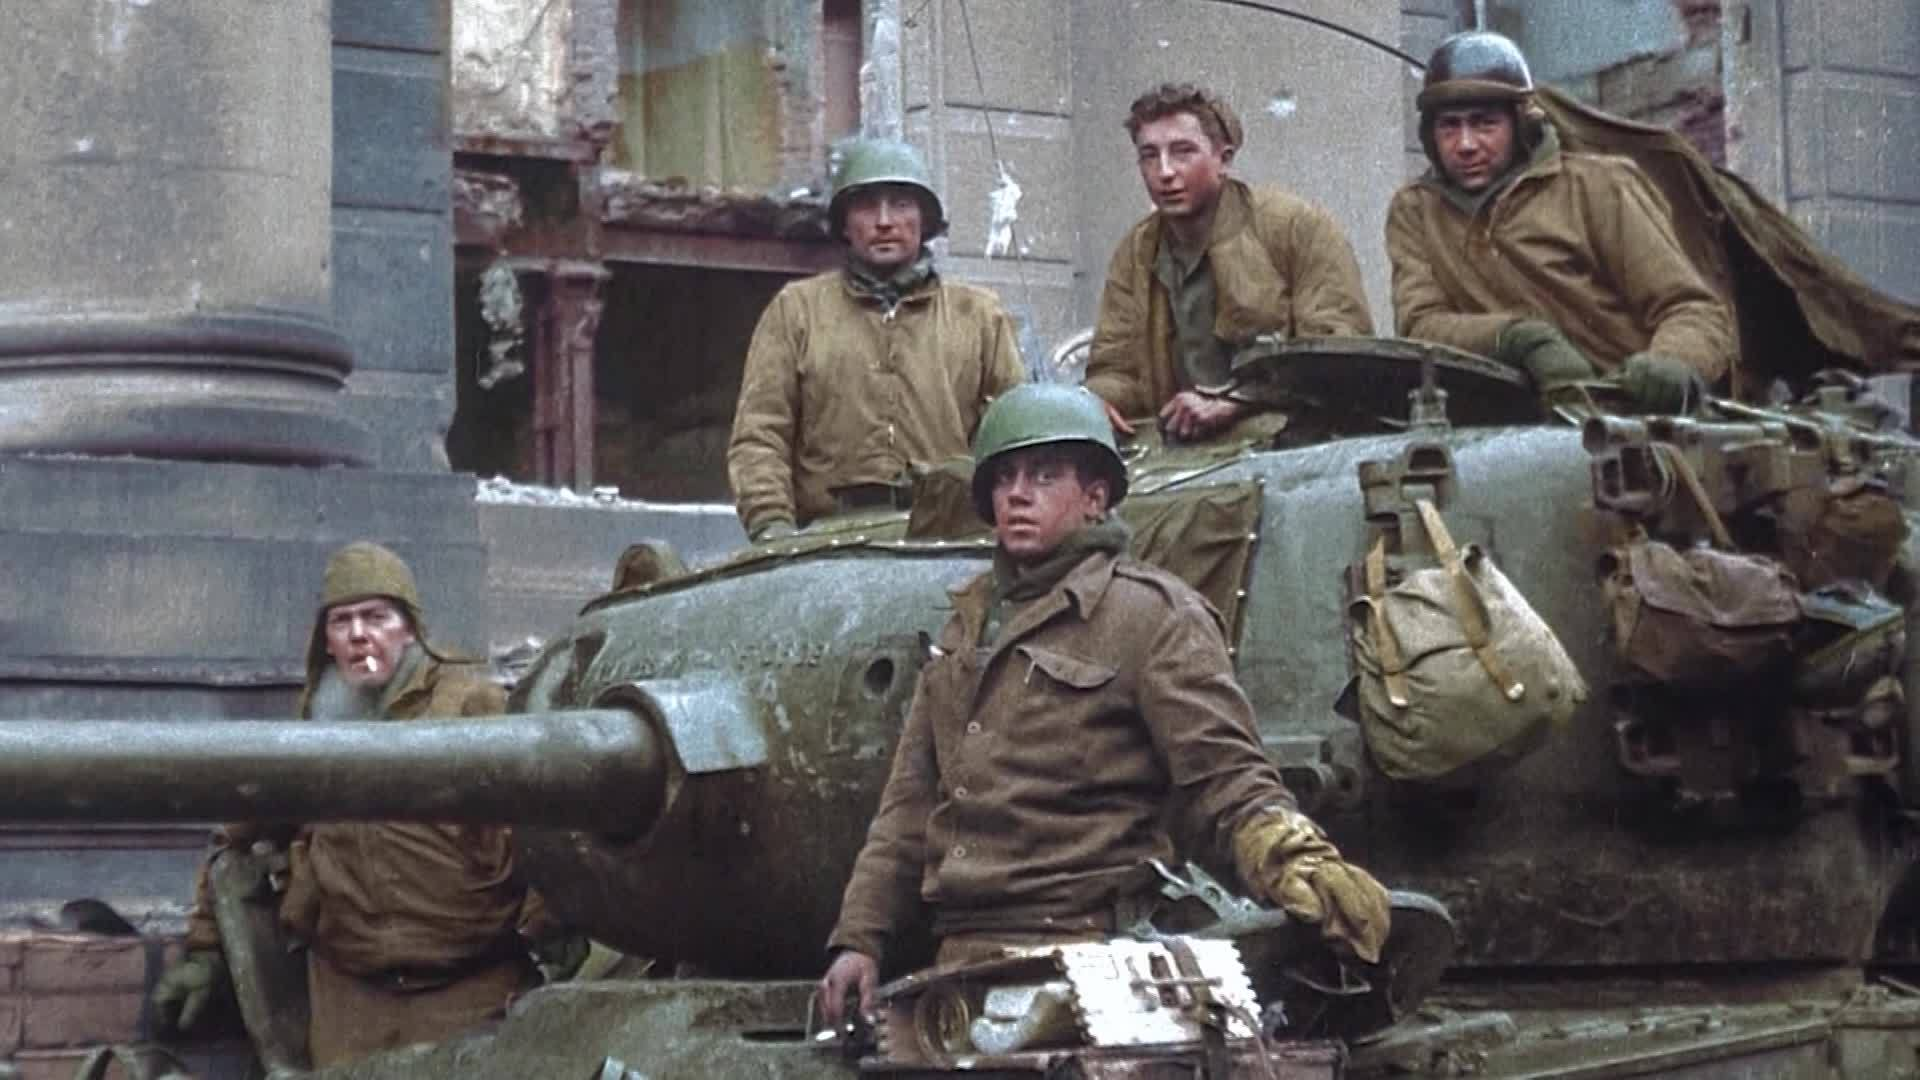 95-YO WWII veteran surprised with tank ride